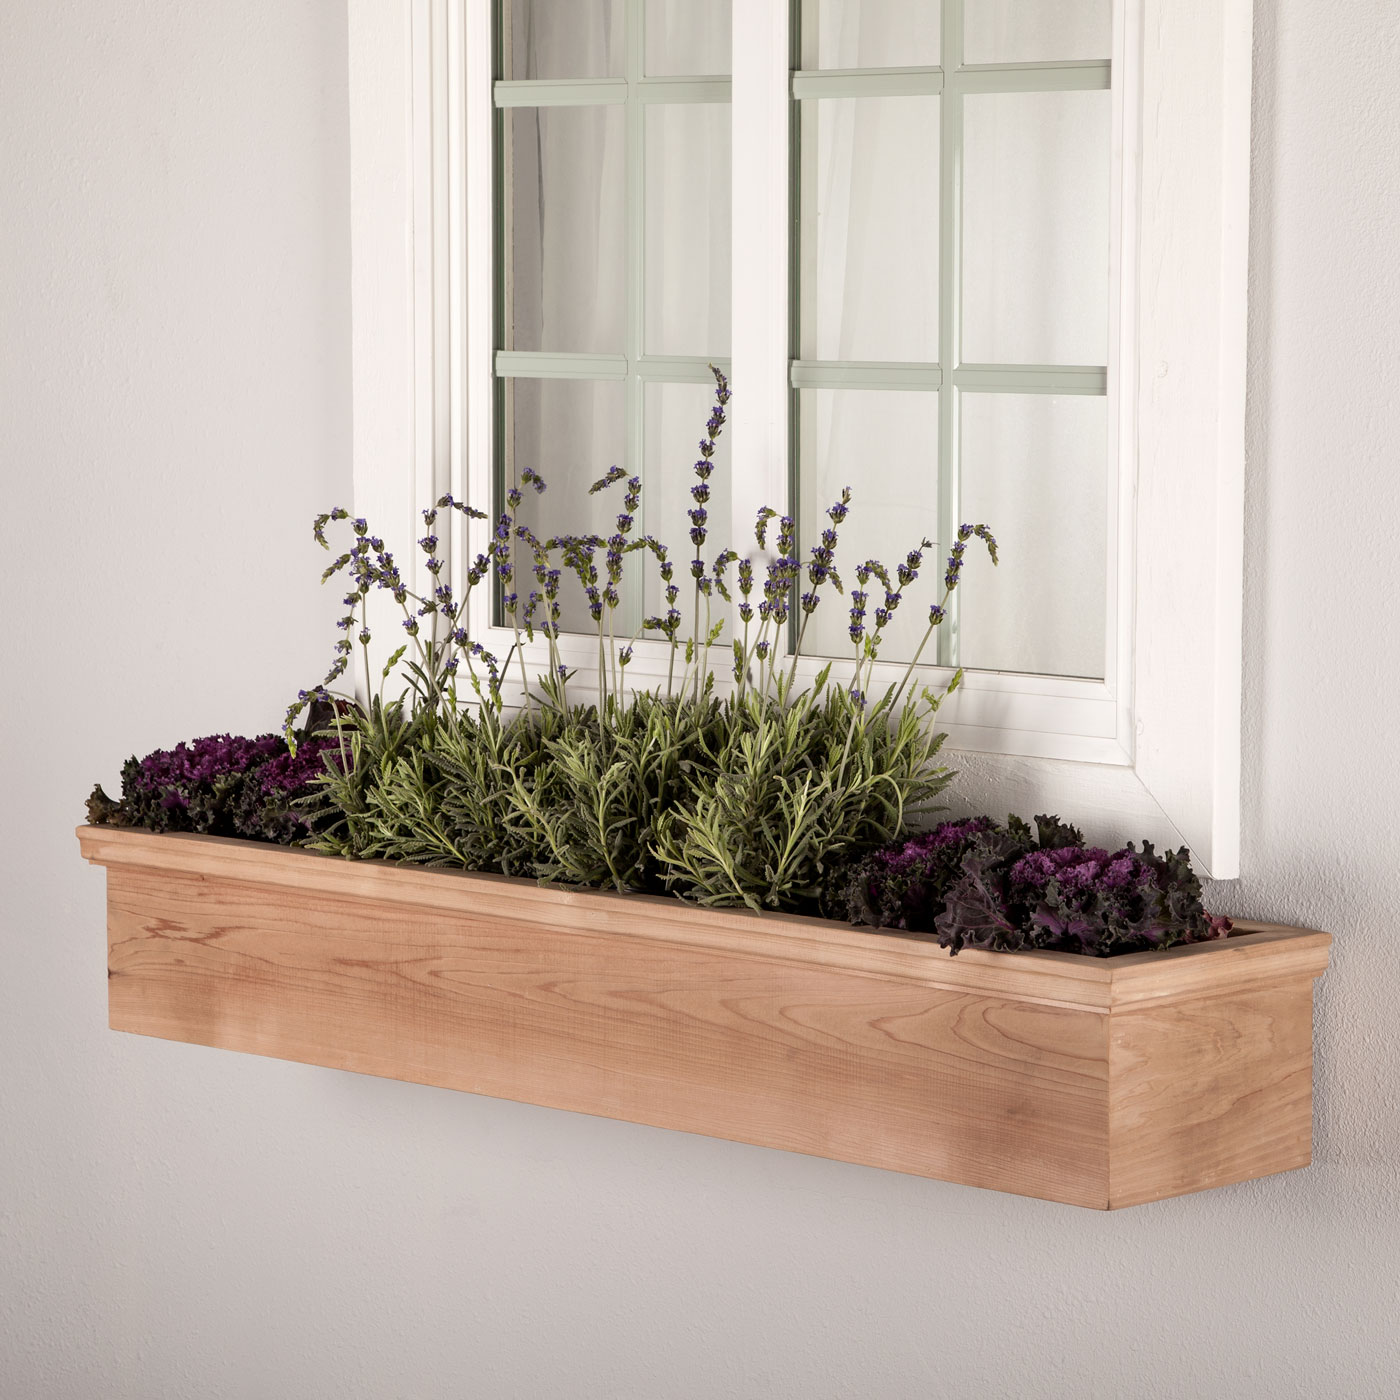 newport cedar window boxes made in usa hooks lattice. Black Bedroom Furniture Sets. Home Design Ideas